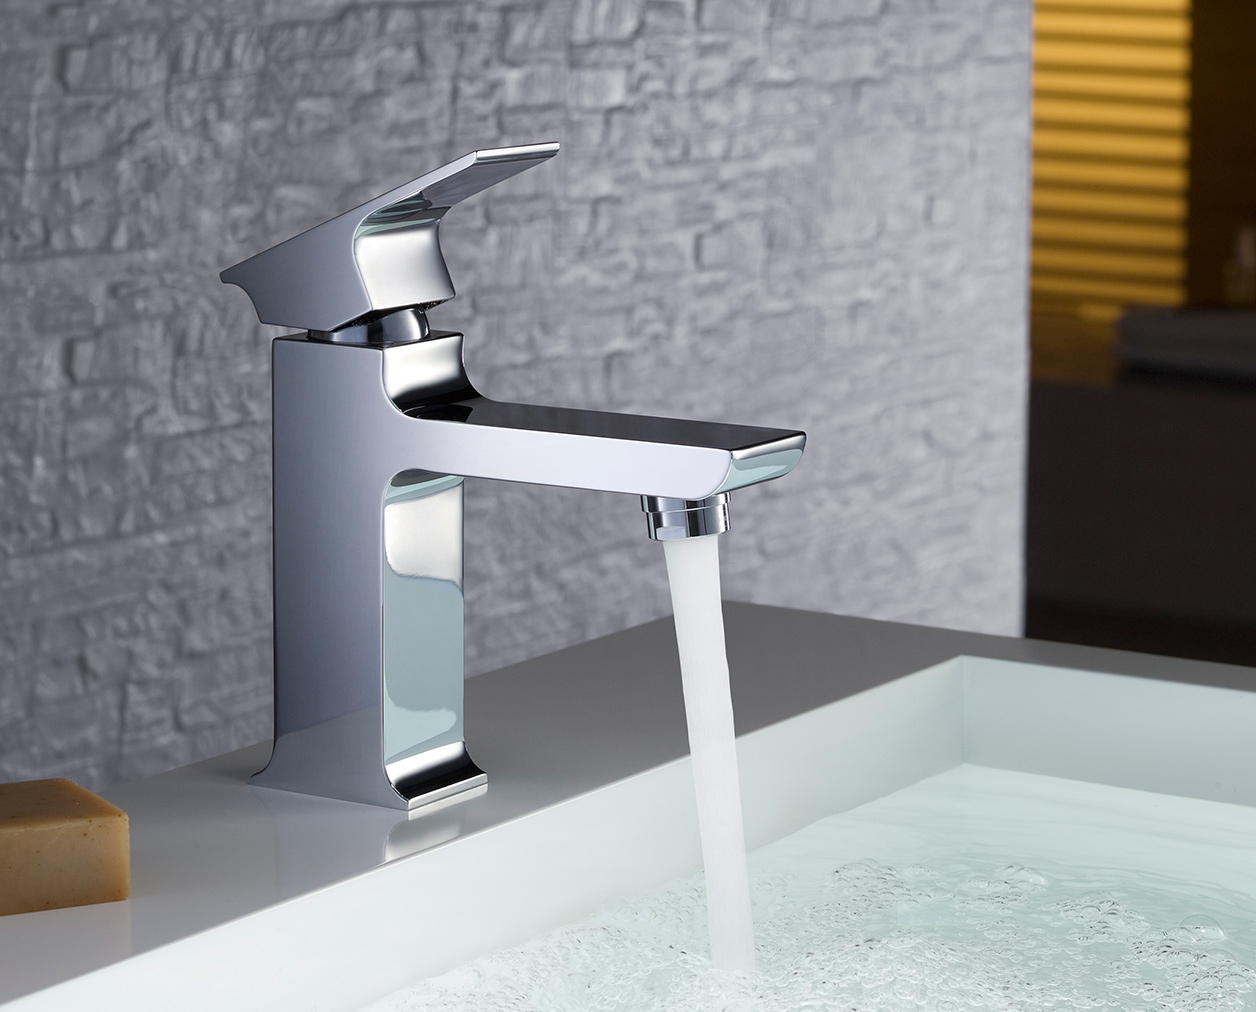 Modern Bathroom Vanities Cabinets Faucets Bathroom Place Miami - Bathroom place hialeah